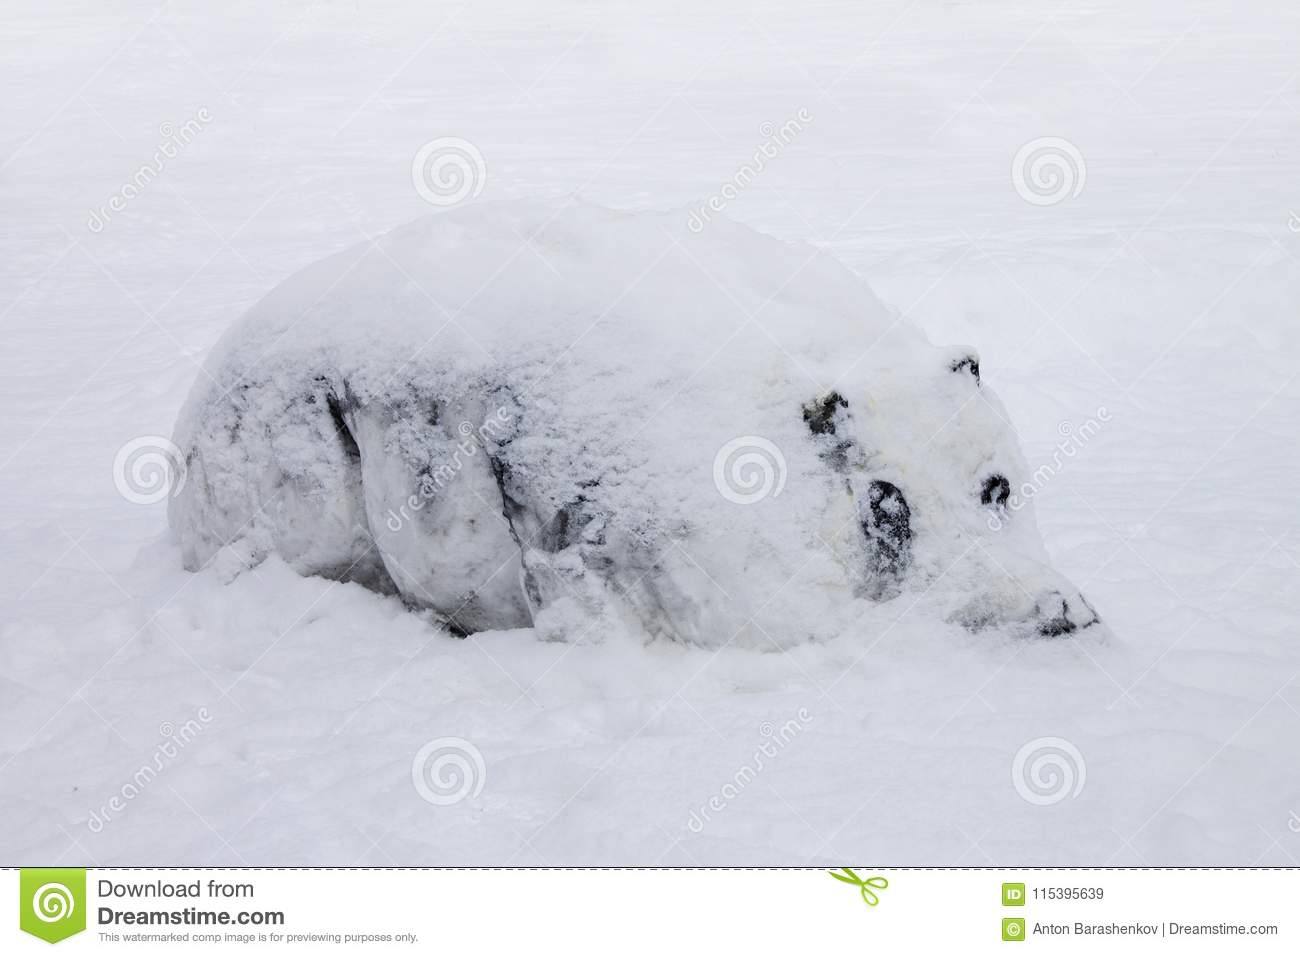 Hippo in snow during cold winter.